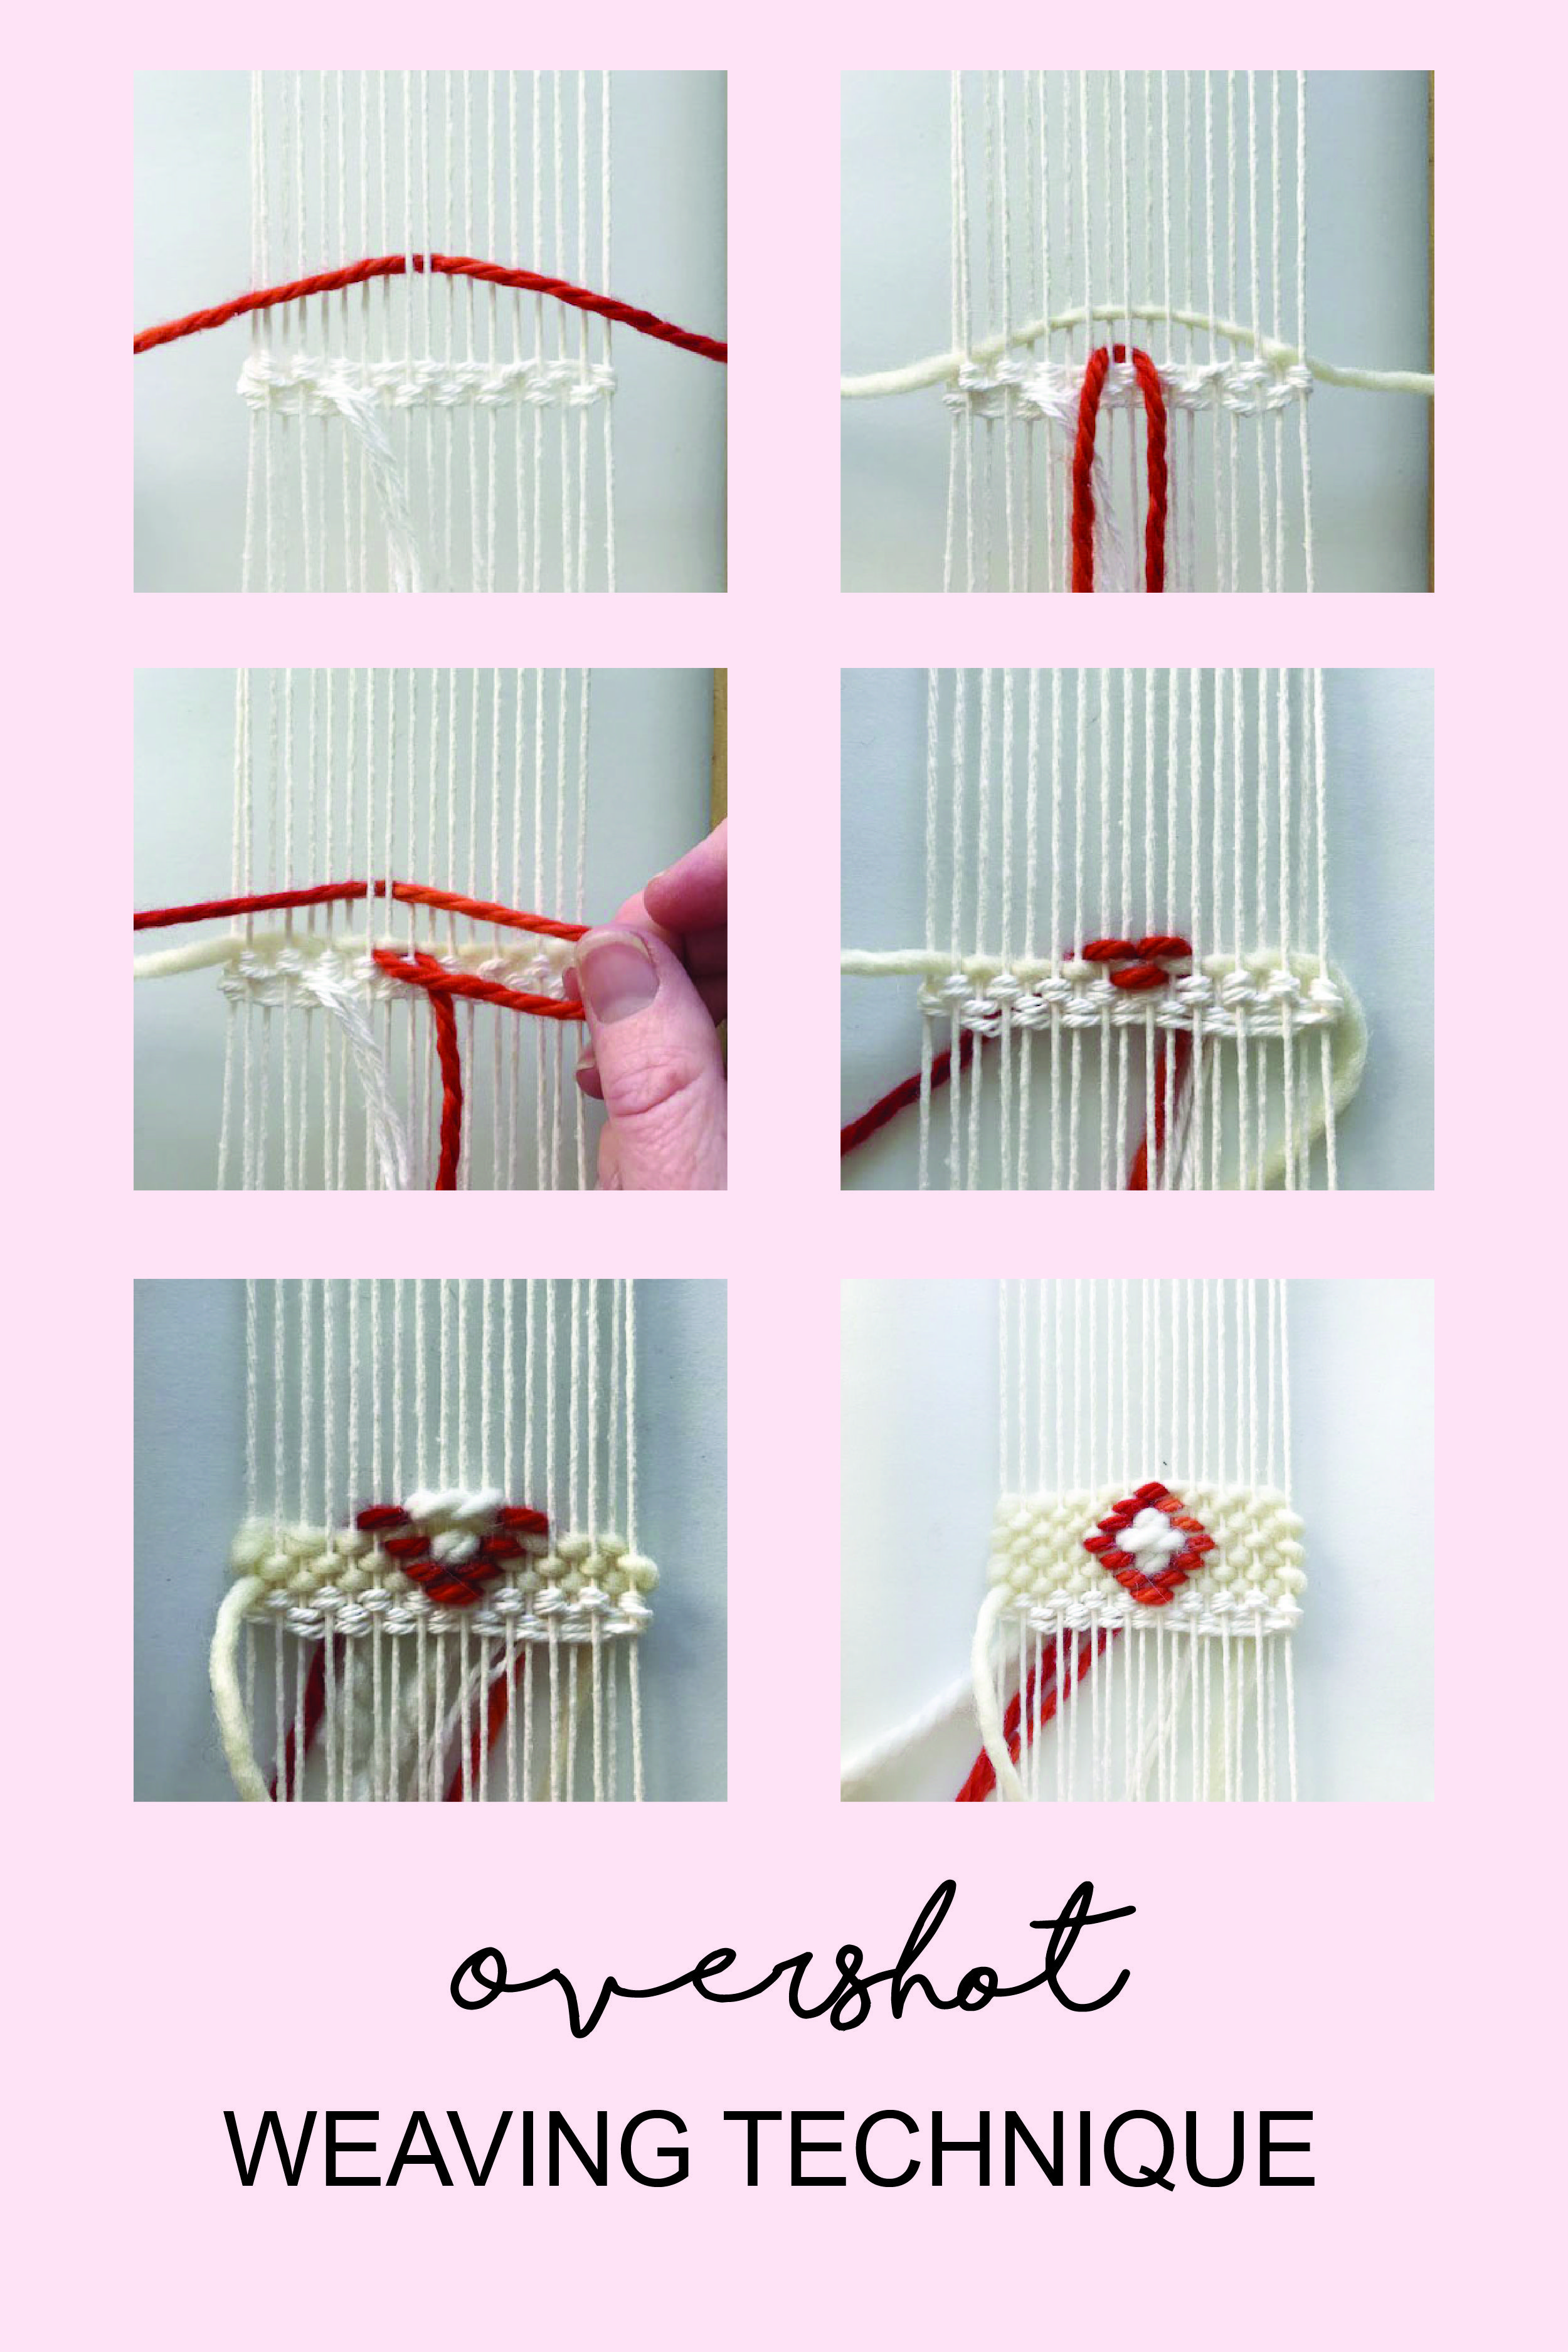 Create shapes such as diamonds and triangles in your woven wall hanging using this weaving technique called overshot.